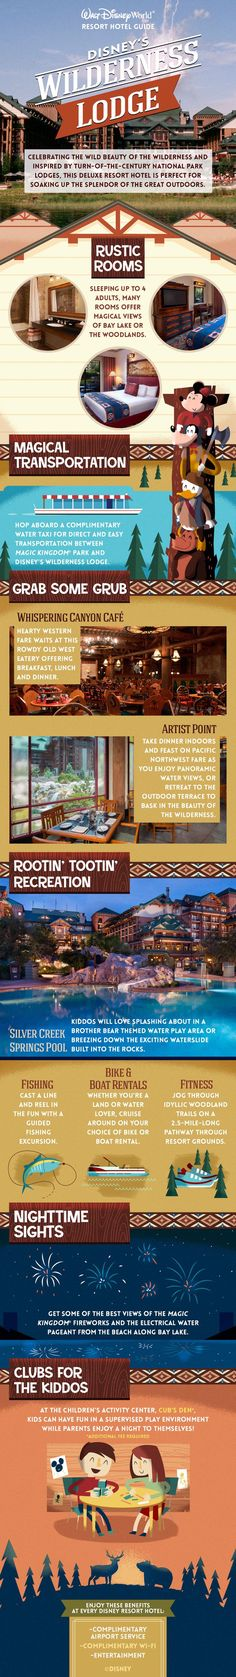 Escape to the rustic majesty of America's Great Northwest. Inspired by turn-of-the-century National Park lodges, Disney's Wilderness Lodge at Walt Disney World Resort celebrates American craftsmanship and honors the beauty of the untamed wilderness.